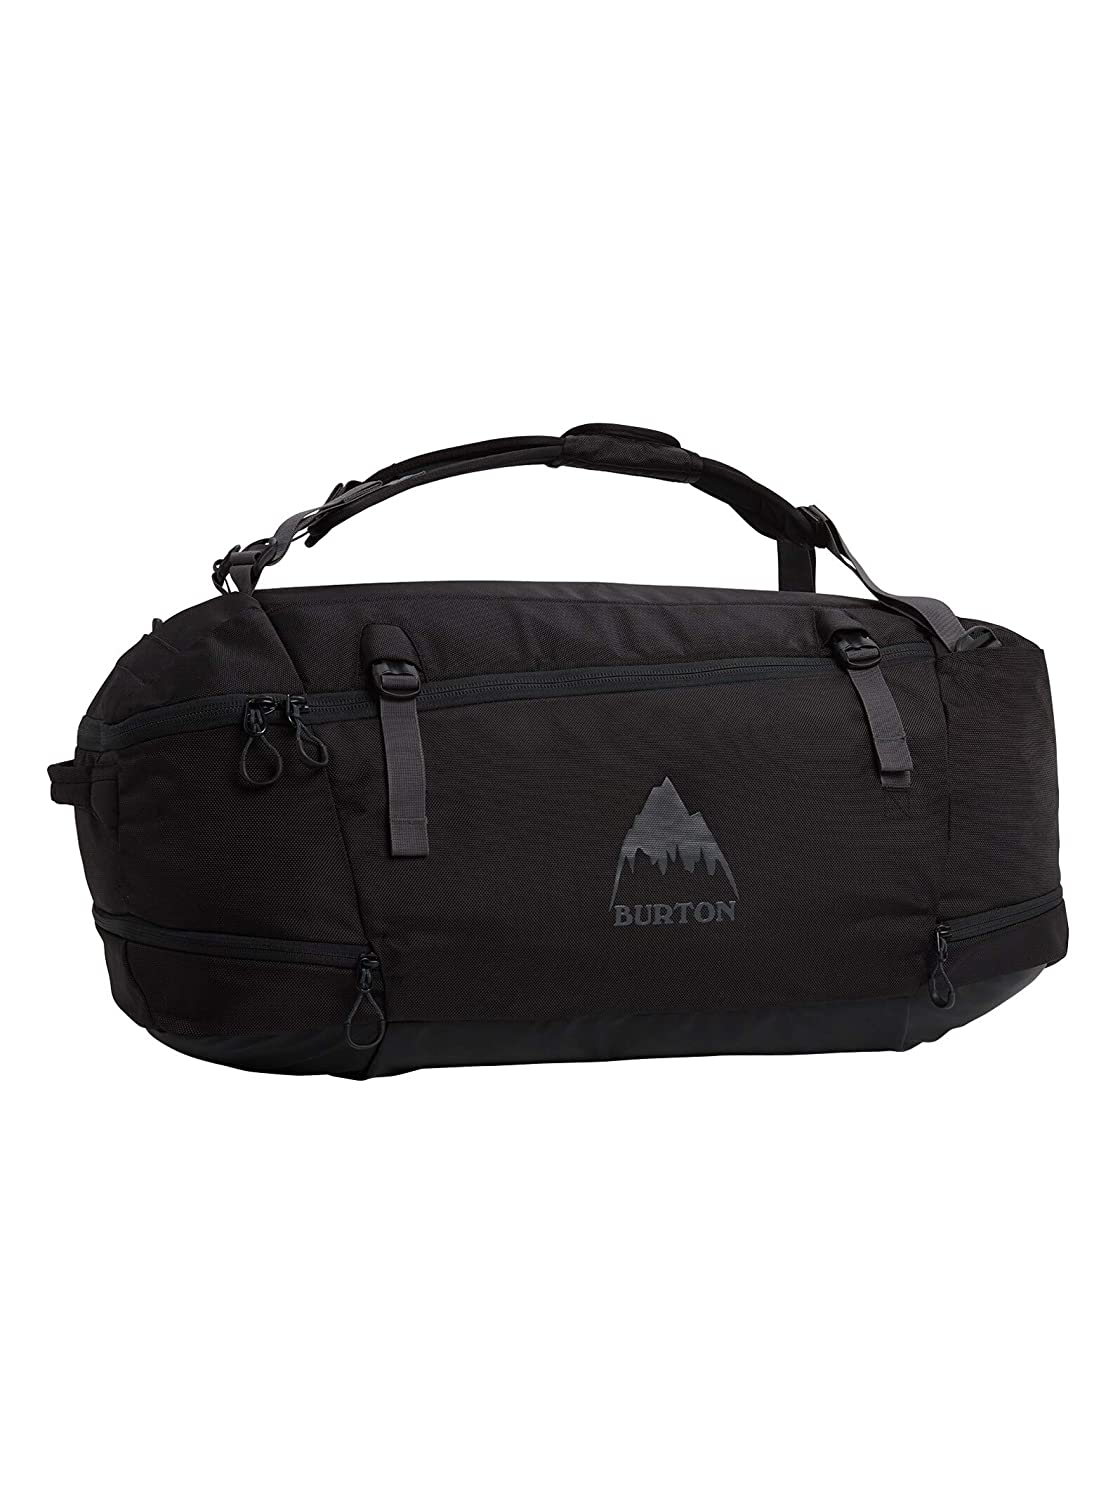 Internal Organization and Tarp-Lined Pockets Burton Multipath 90L Duffle Bag with Padded Straps//Handle